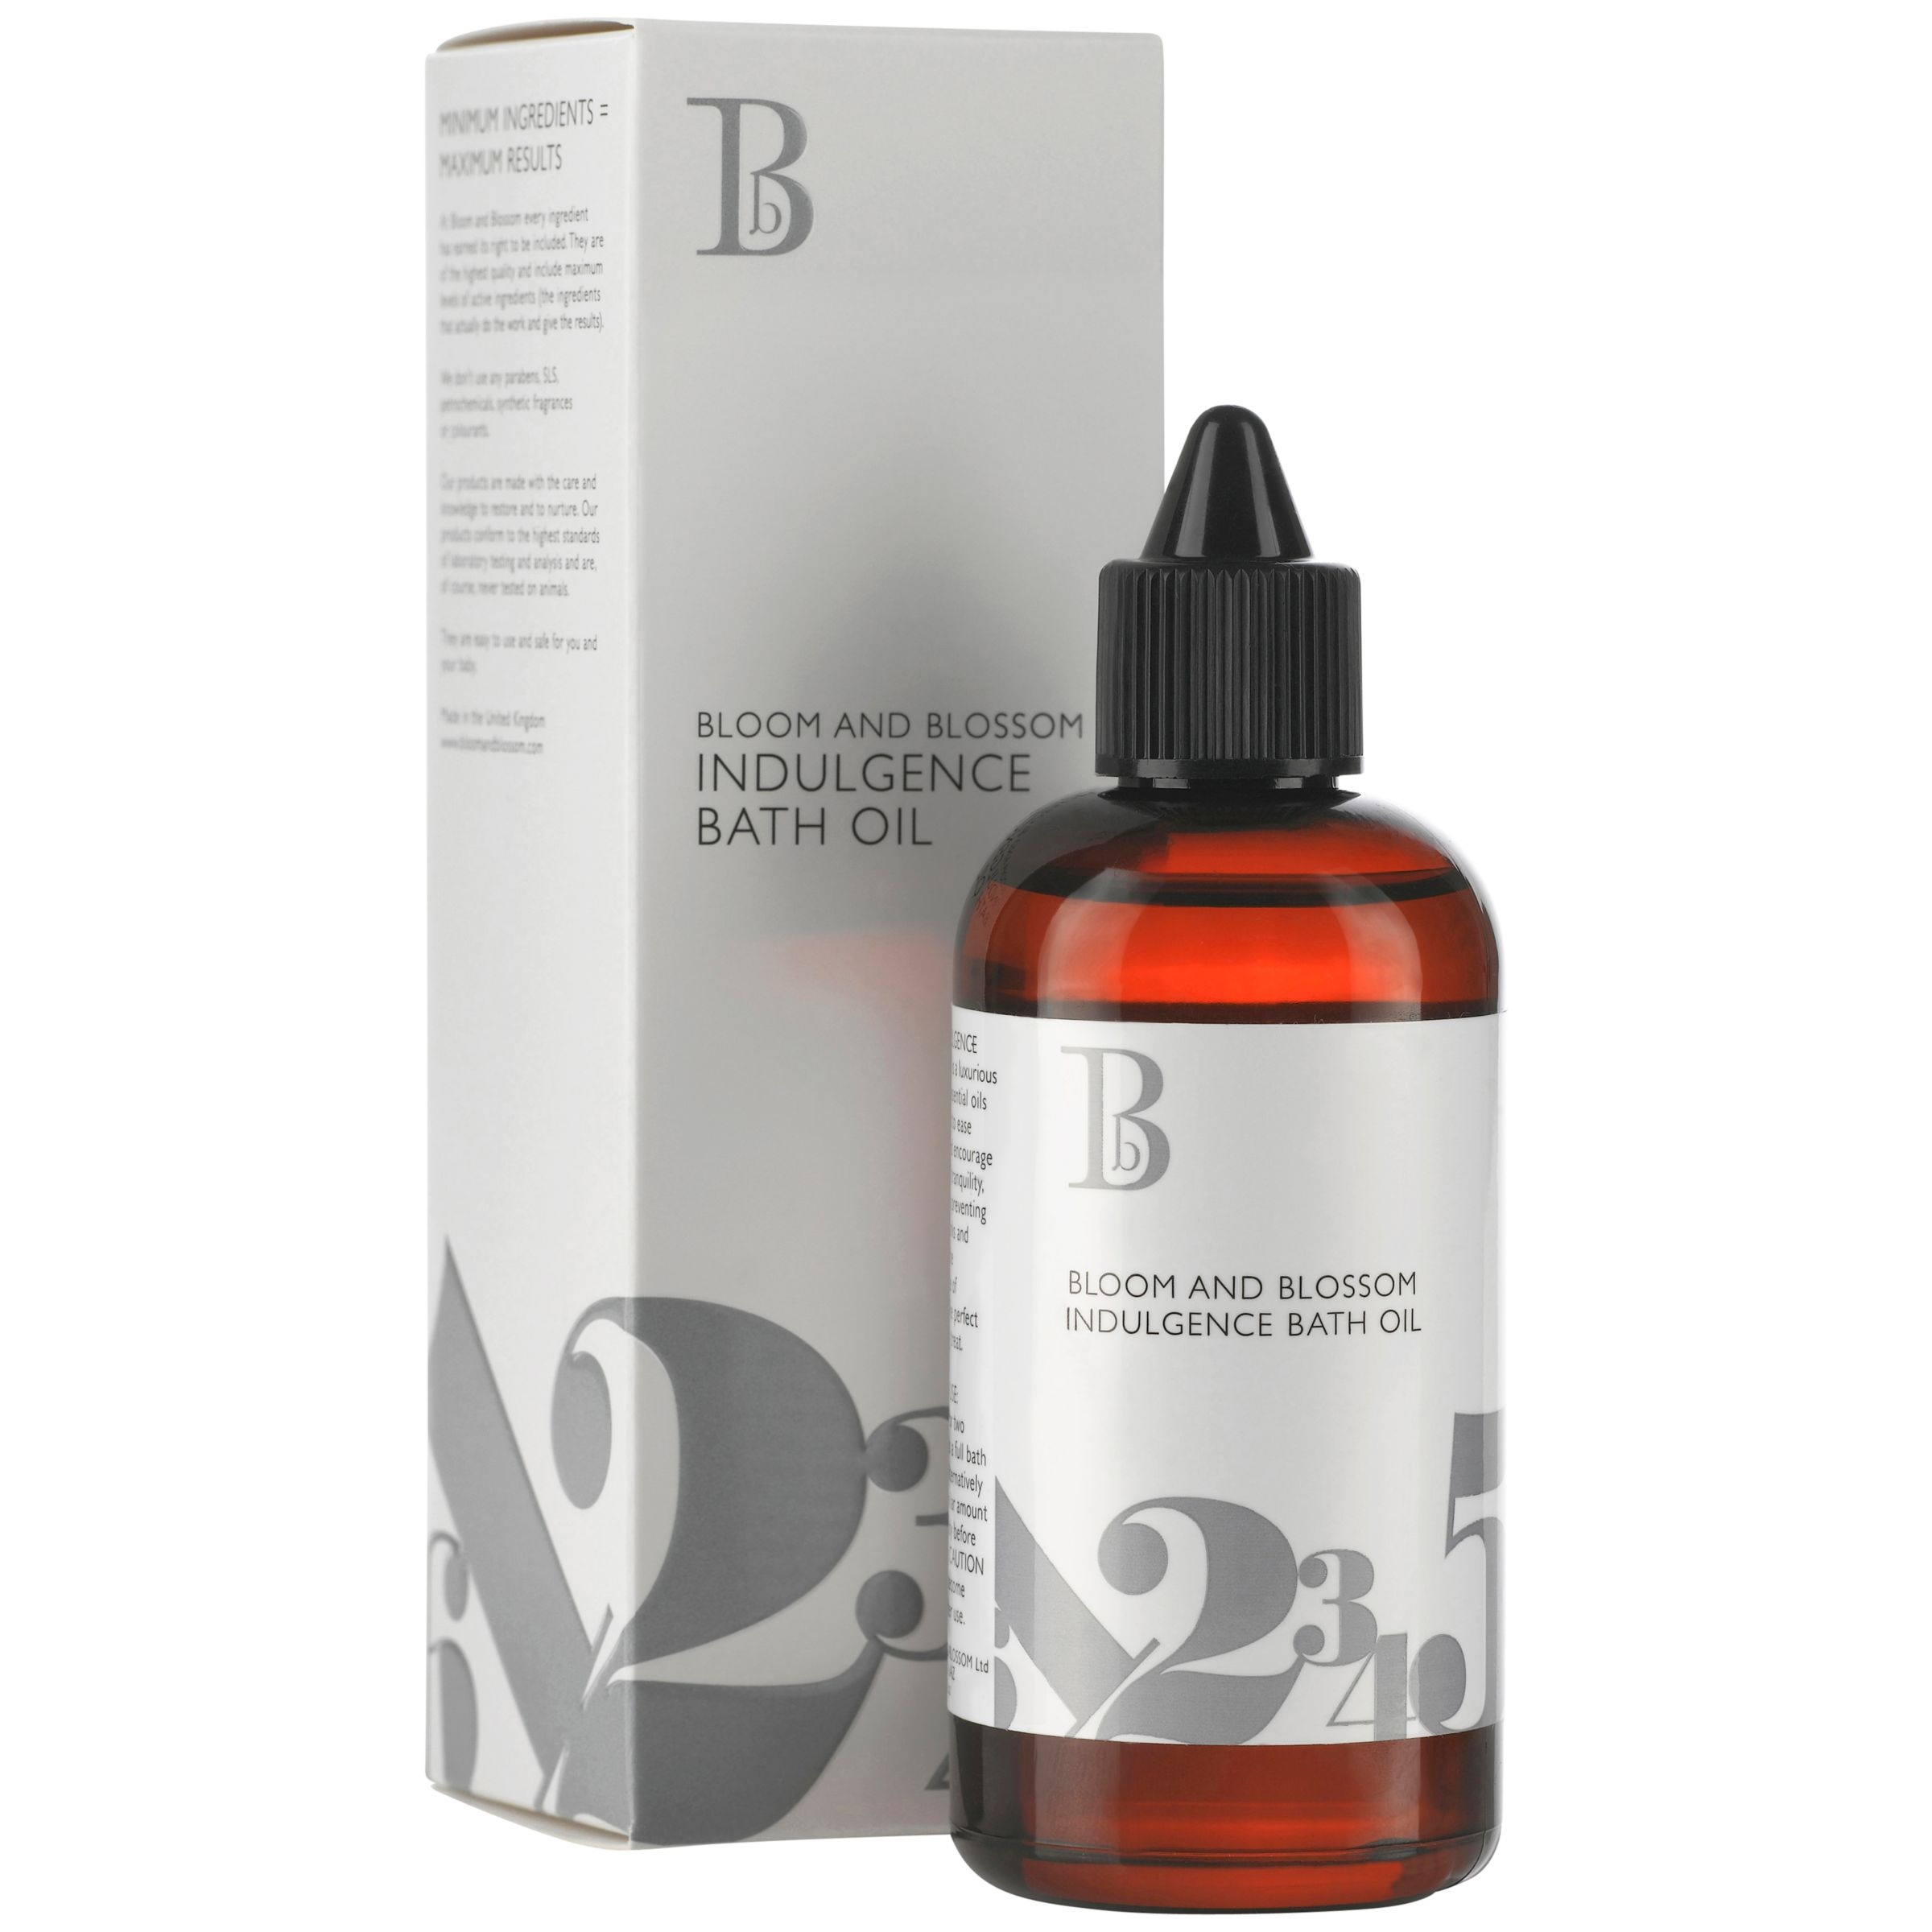 Bloom and Blossom Bloom and Blossom Indulgence Bath Oil, 100ml